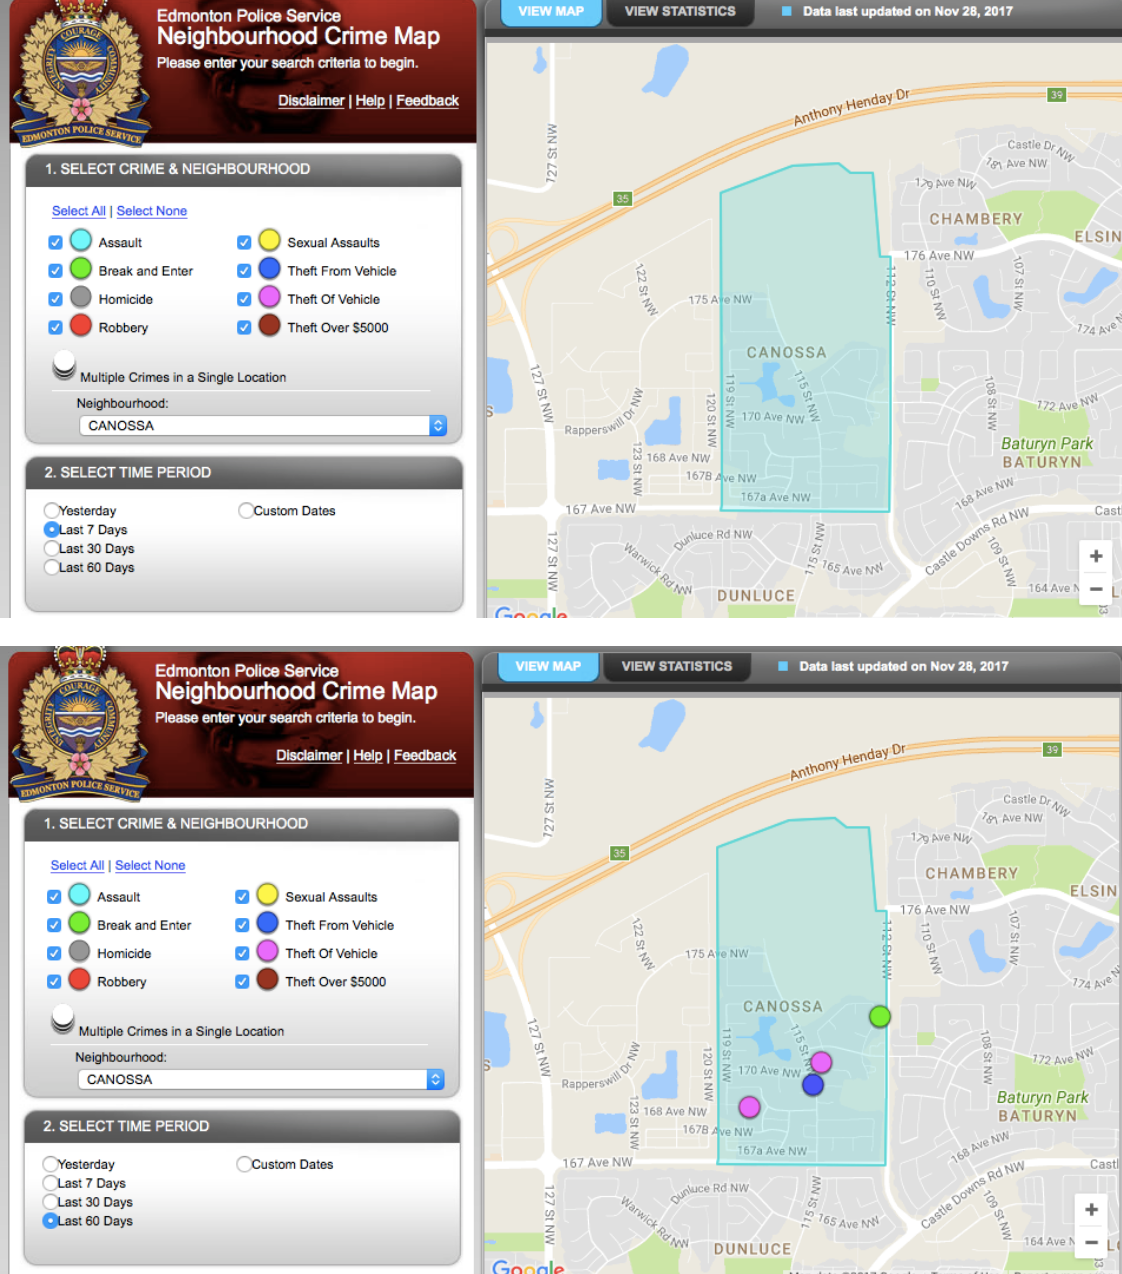 edmonton police service neighbourhood crime map - november 2017